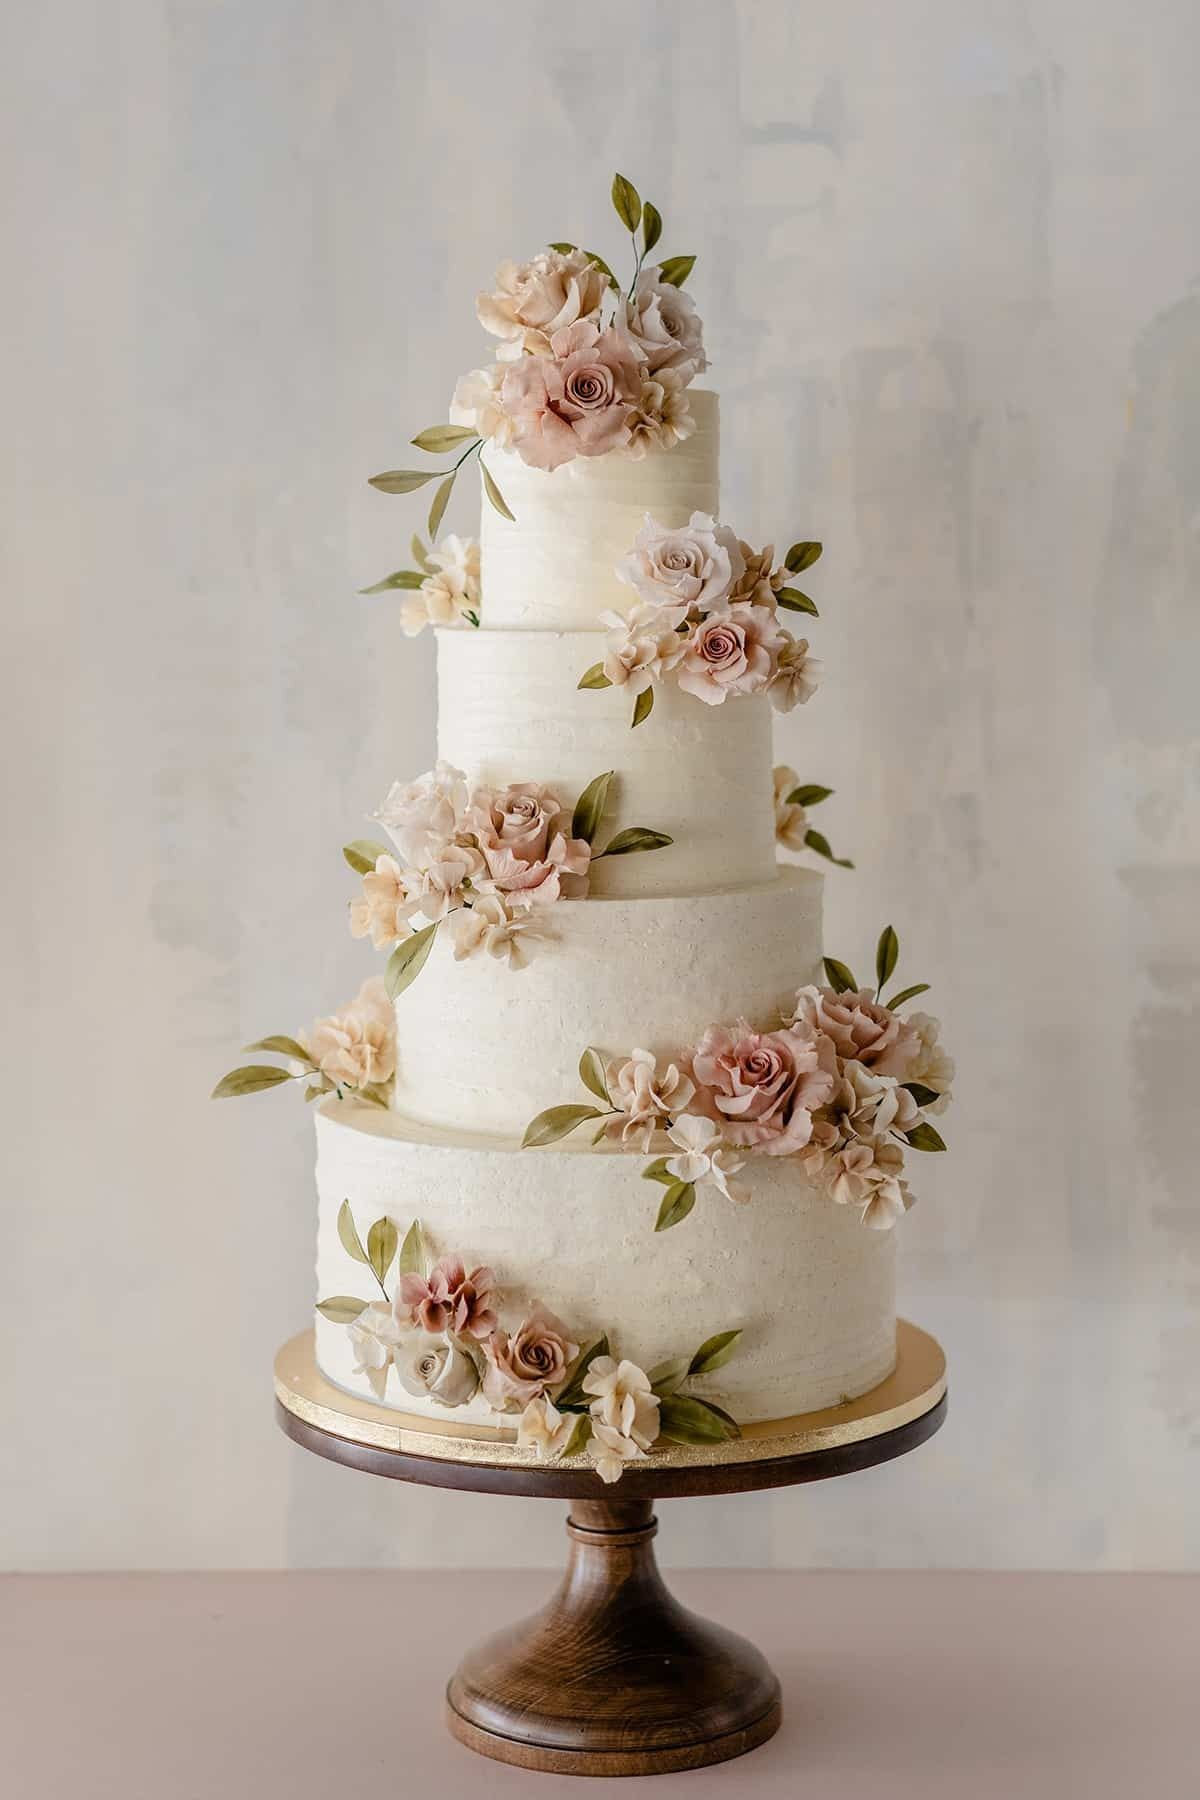 Beautiful 4 Tier Wedding Cake With Floral Appliques By Winifred Kriste Cake Tiered Wedding Cake 4 Tier Wedding Cake Floral Wedding Cakes